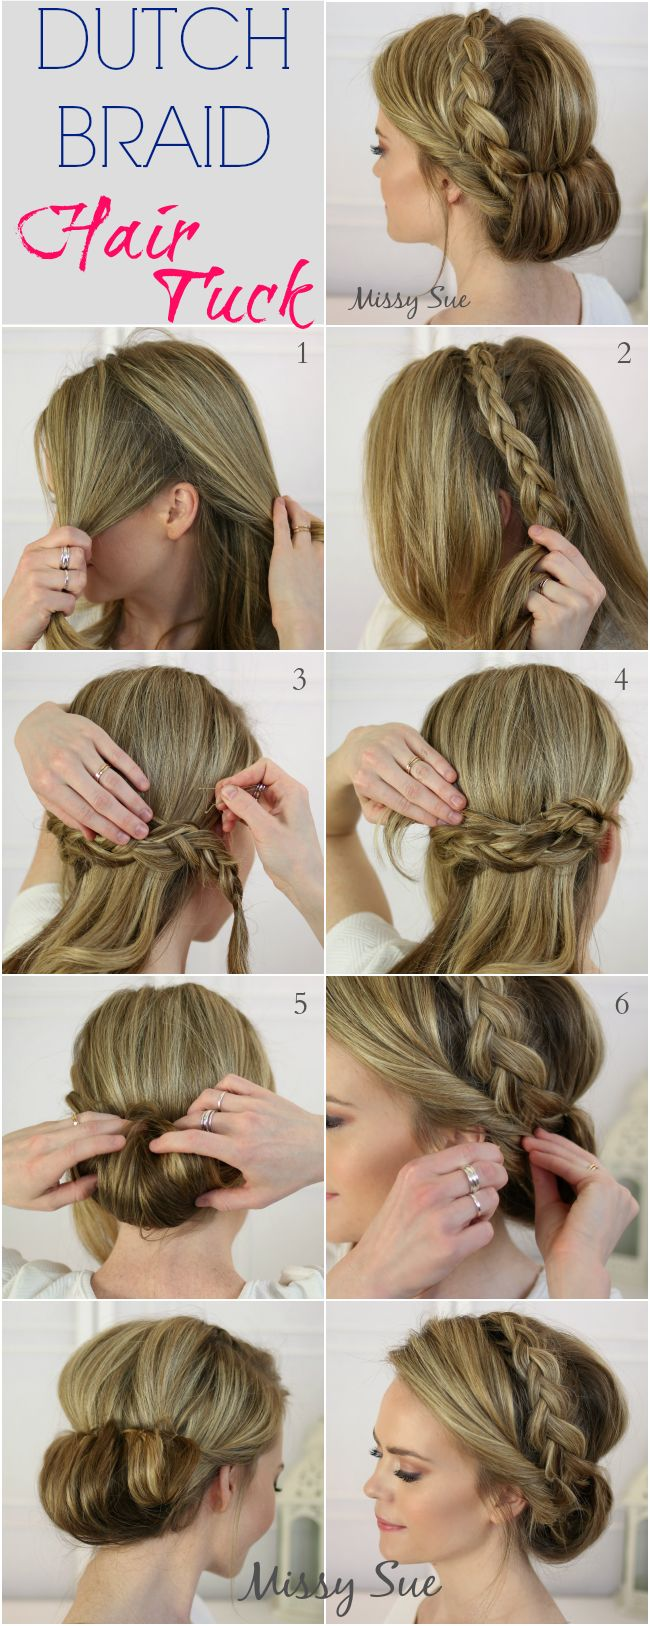 Surprising 1000 Images About Braided Hairstyles On Pinterest Updo Crown Hairstyles For Women Draintrainus